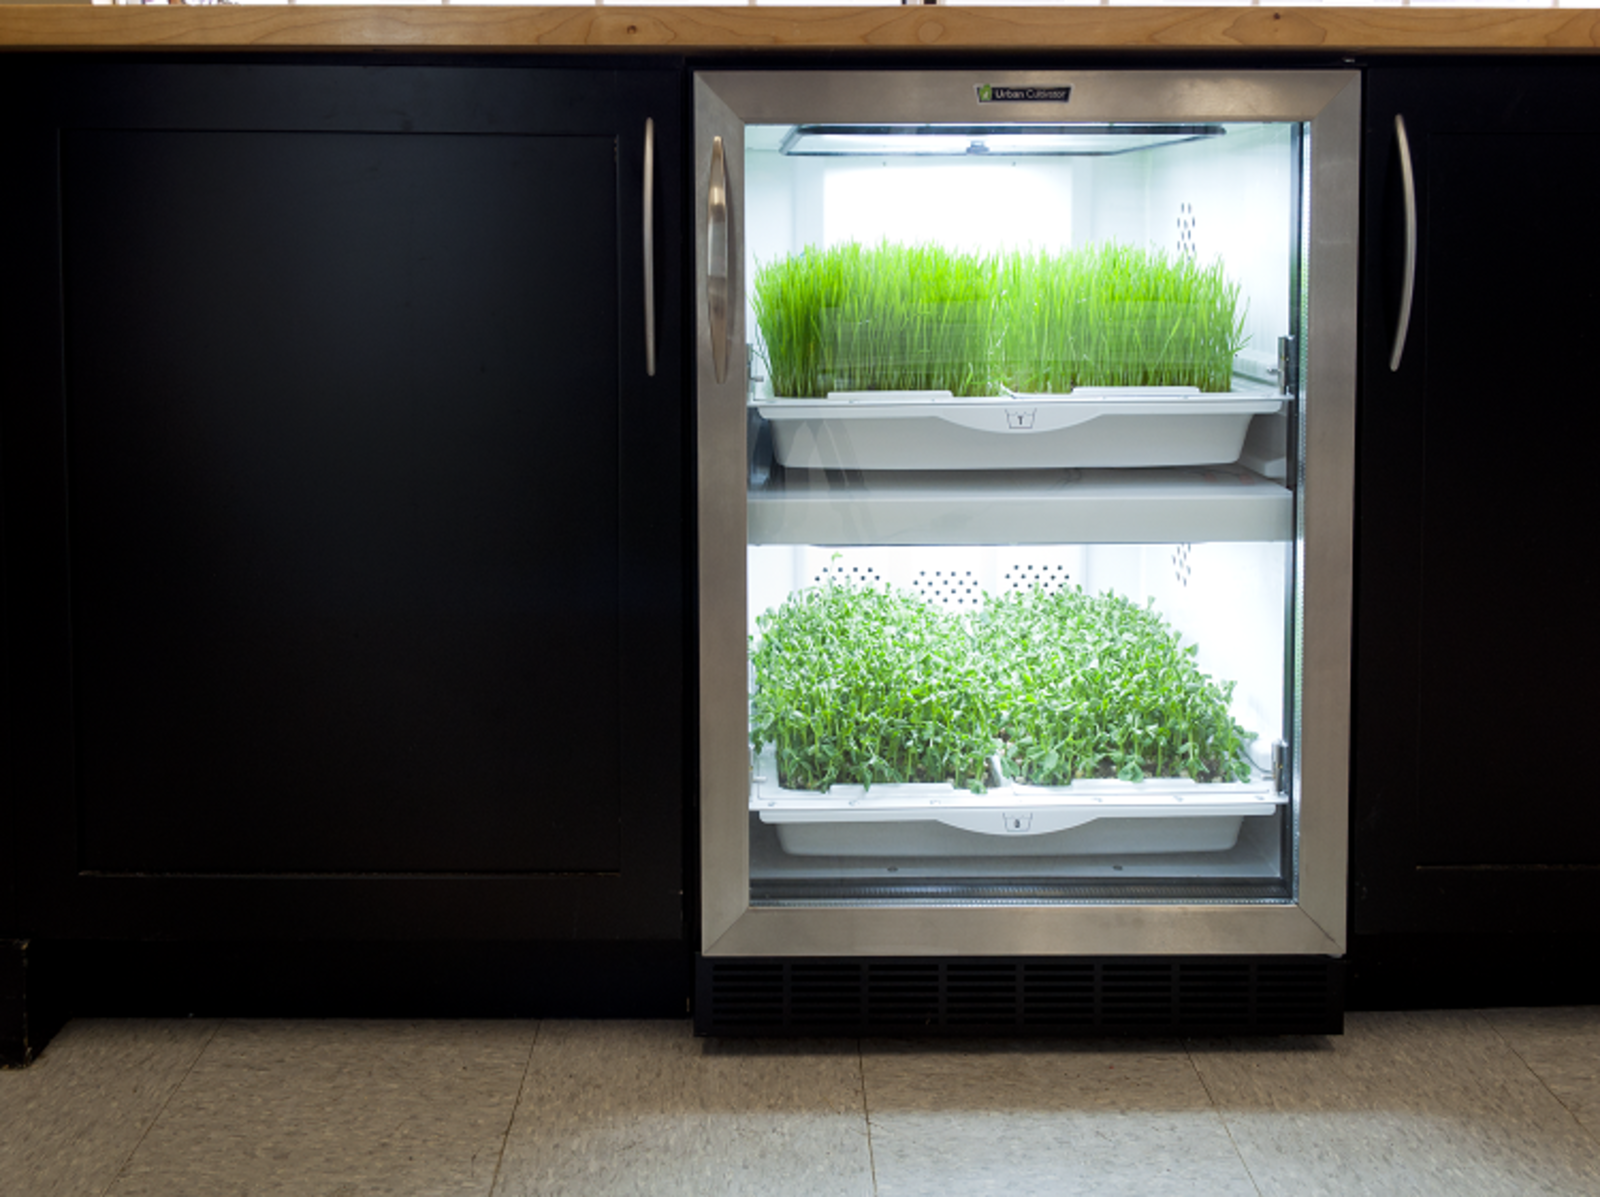 Kitchen The Urban Cultivator is a dishwasher-sized micro-garden that appears to be a wine rack for plants. It is poised to slide into pre-existing kitchen designs, making it an easy way to add a drawer of fresh herbs to your home.    Photo 6 of 6 in 5 Simple Tips For Growing an Indoor Herb Garden from Products for Indoor and Urban Gardening